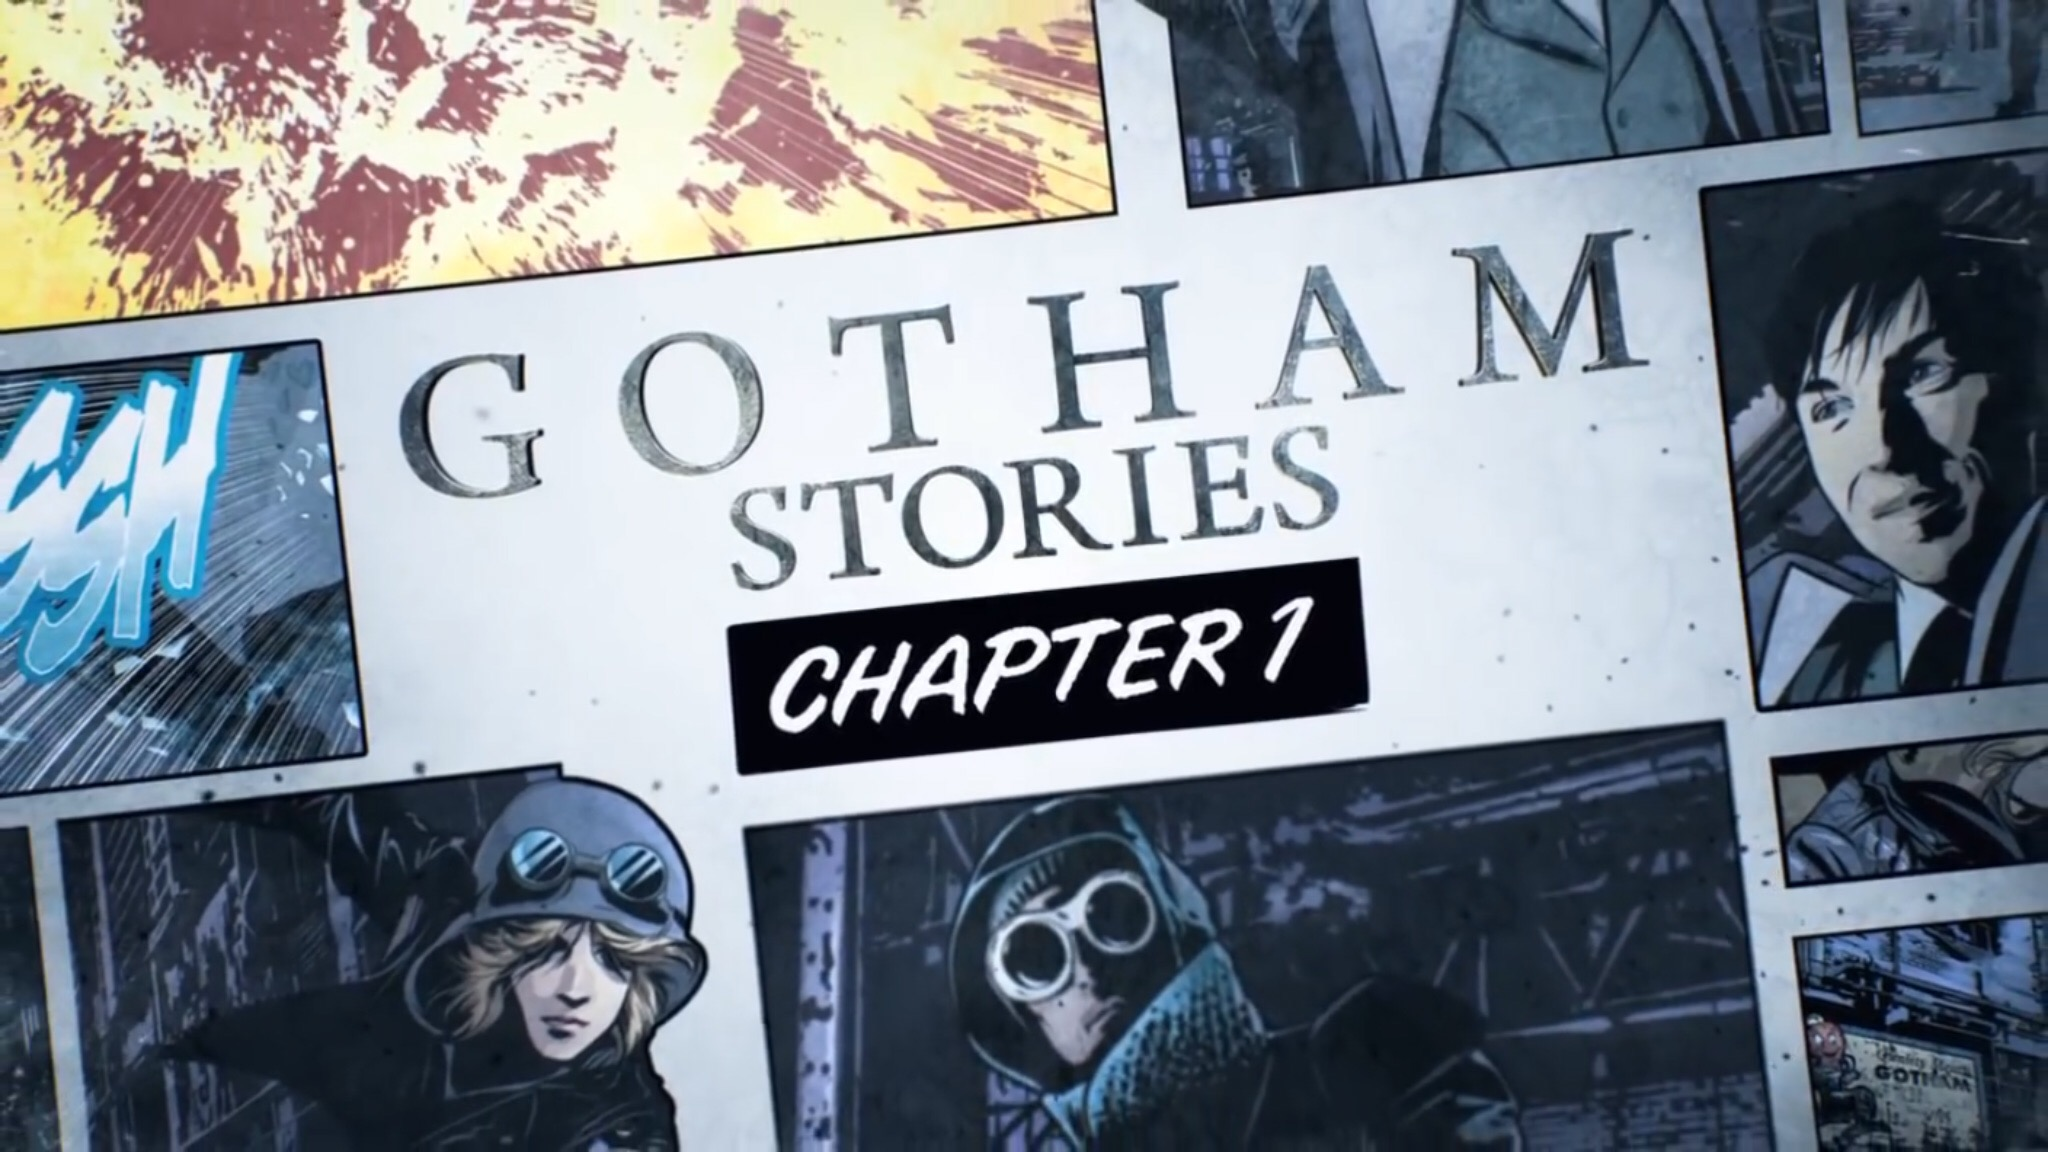 Gotham Stories (Webseries) Episode: Chapter 1